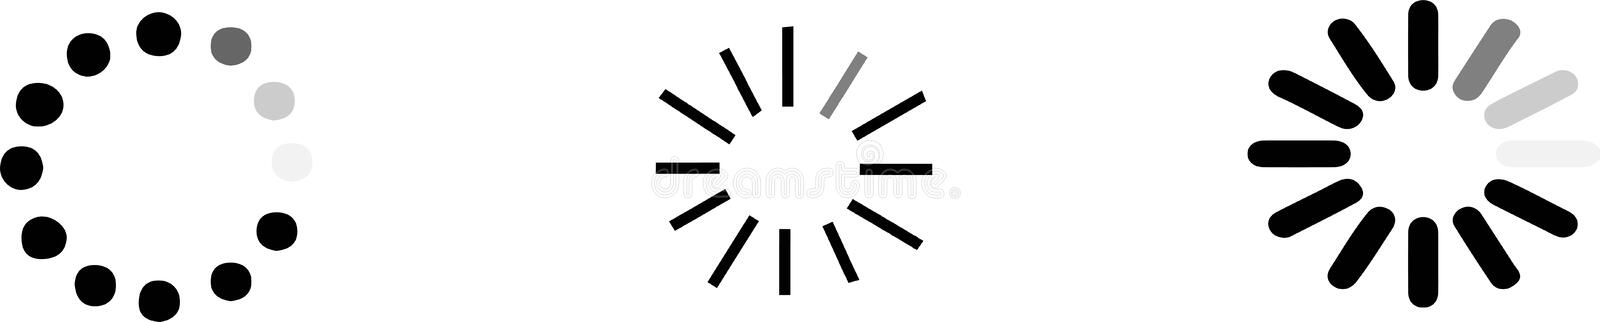 Loading icon on white background royalty free illustration